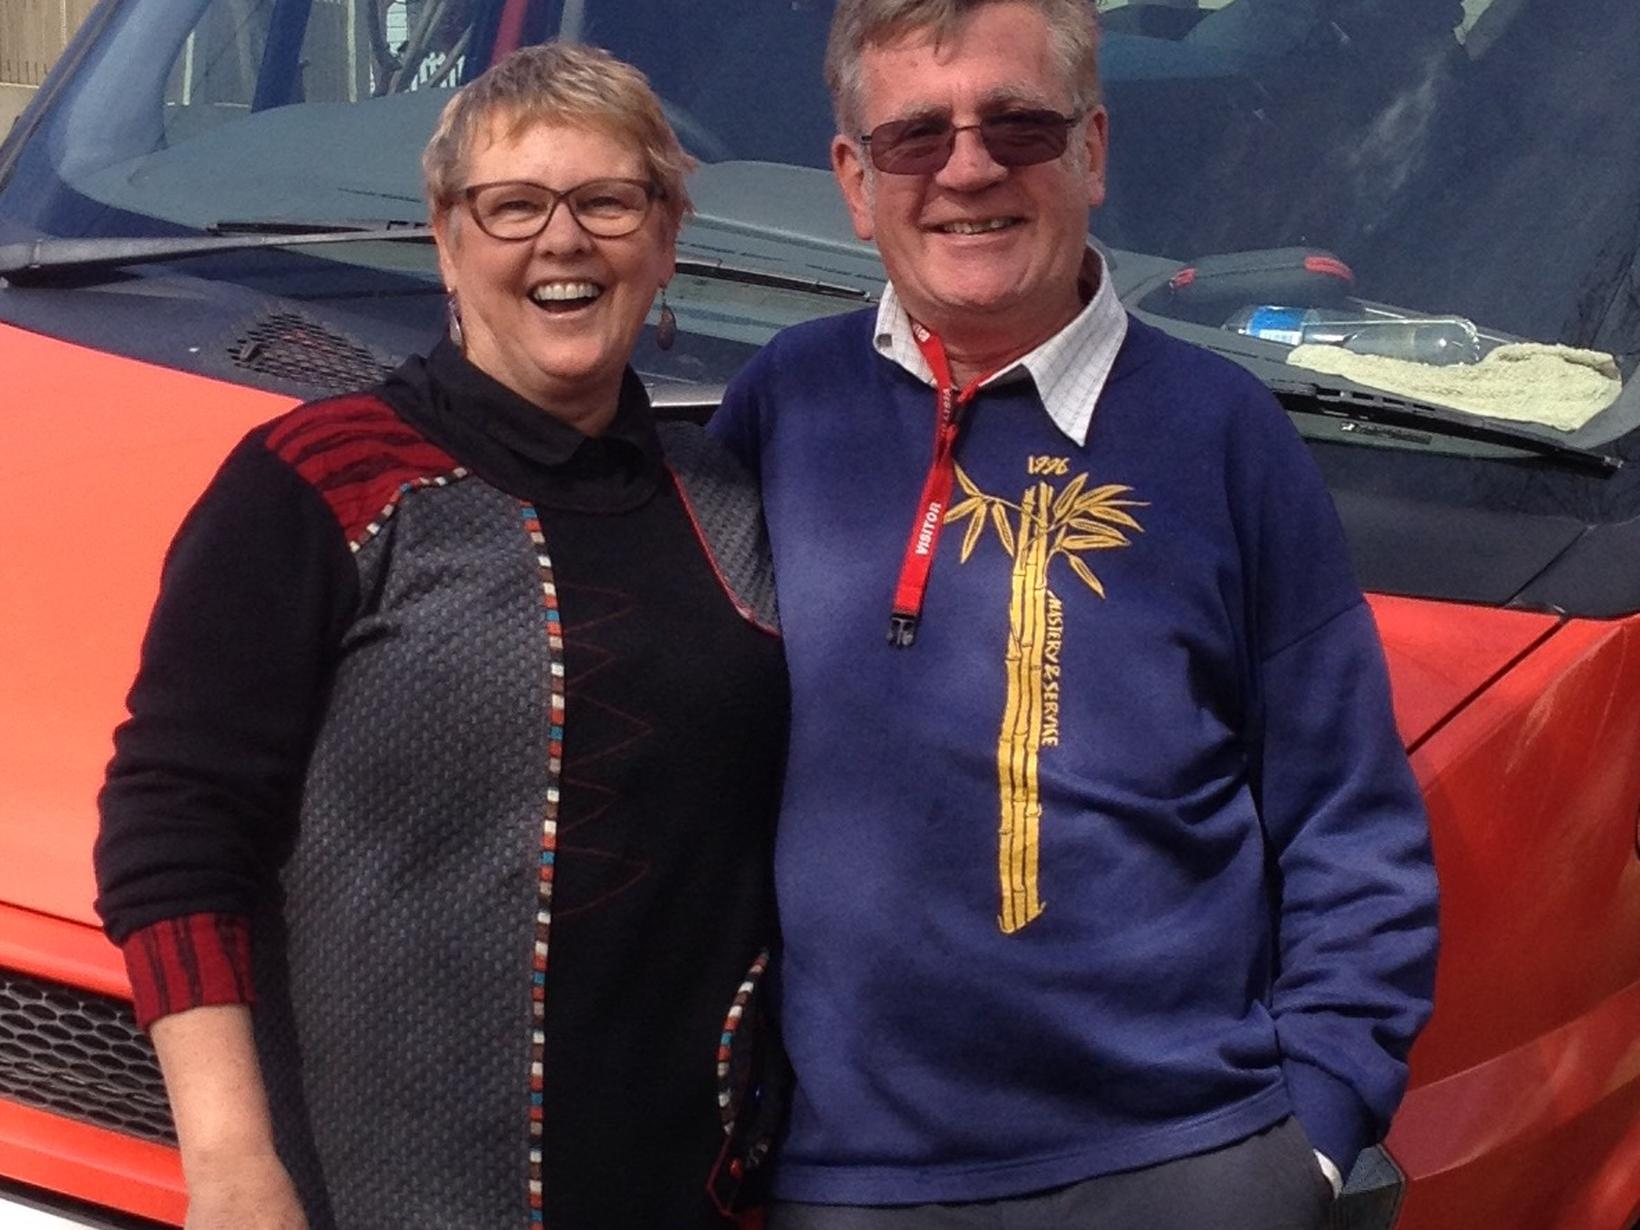 Lesley & Christopher from Sydney, New South Wales, Australia